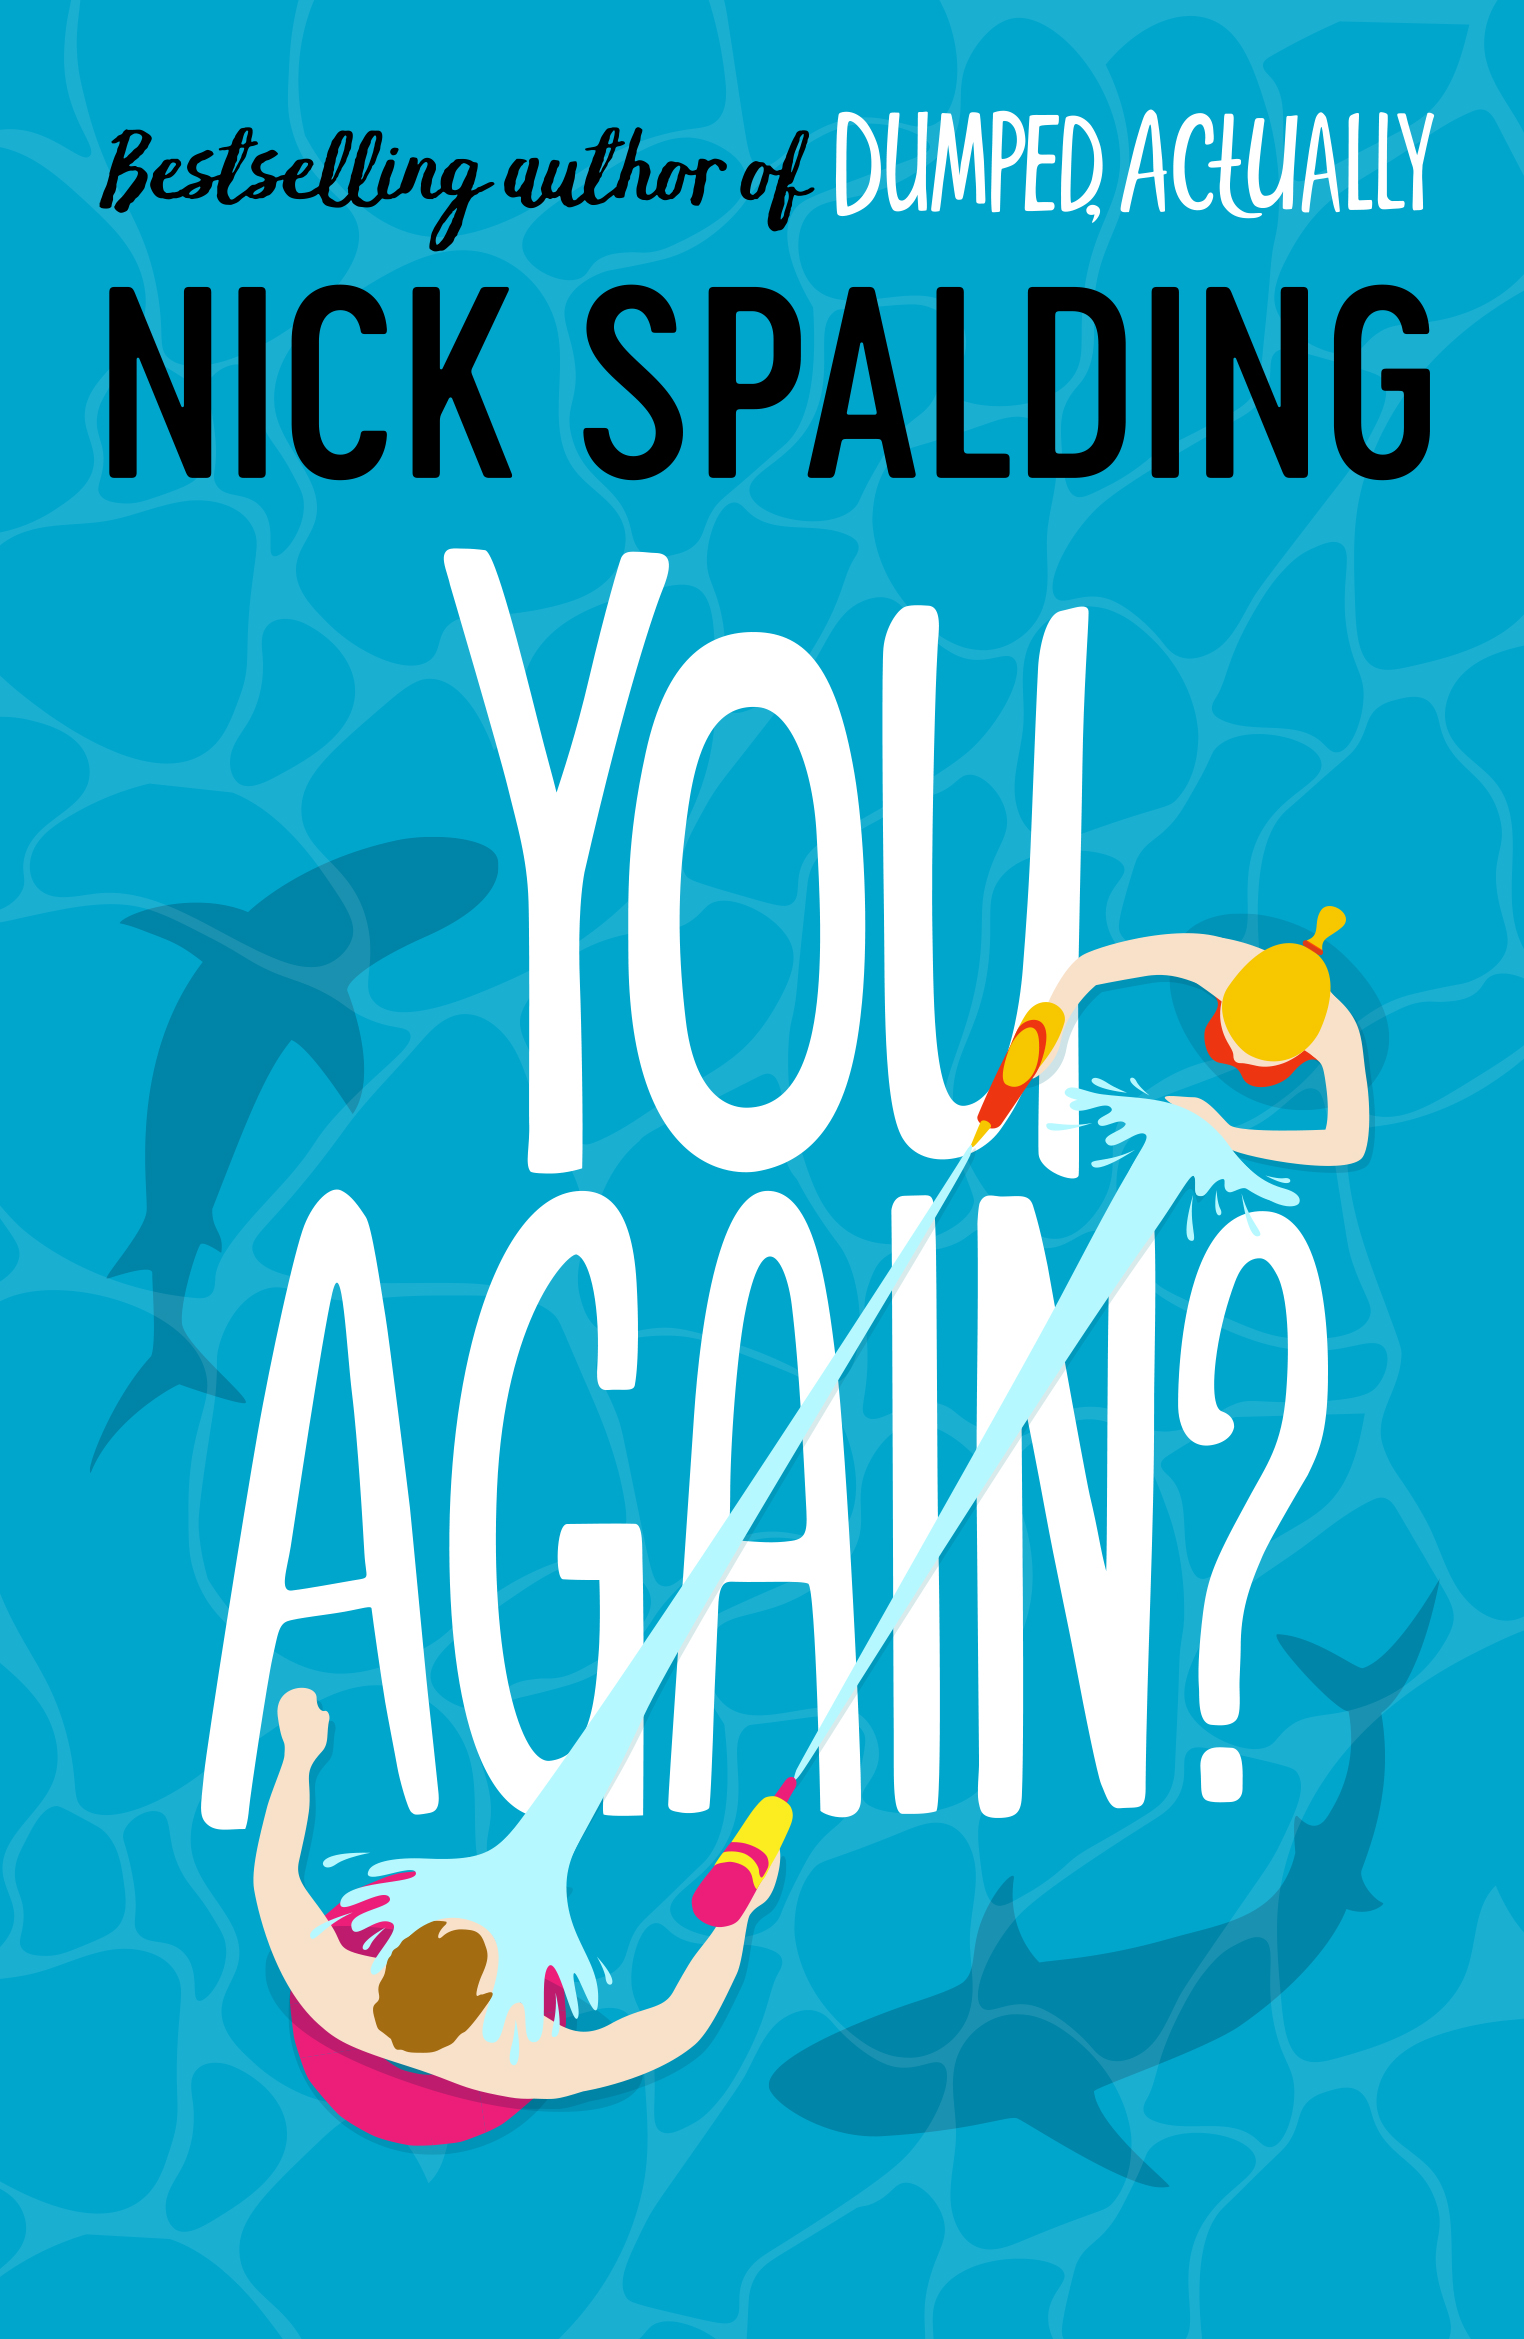 You Again? Release Date? Nick Spalding 2021 New Book